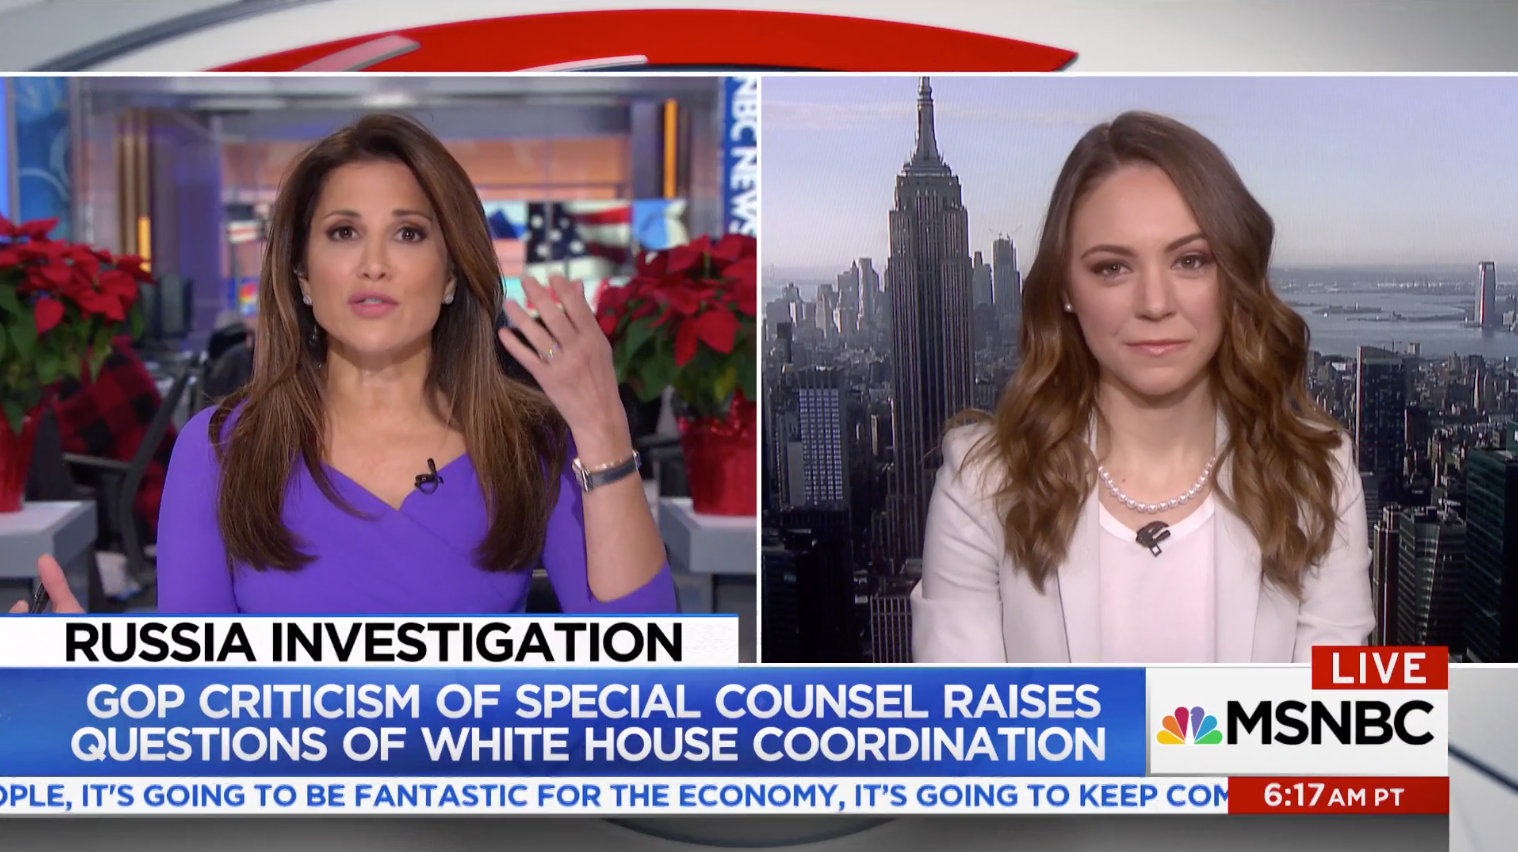 Natasha Bertrand expands on her new report that describes contacts between President Trump and several prominent Republican critics of special counsel Bob Mueller's Russia probe. Is this a new strategy for the White House in managing the Russia question?